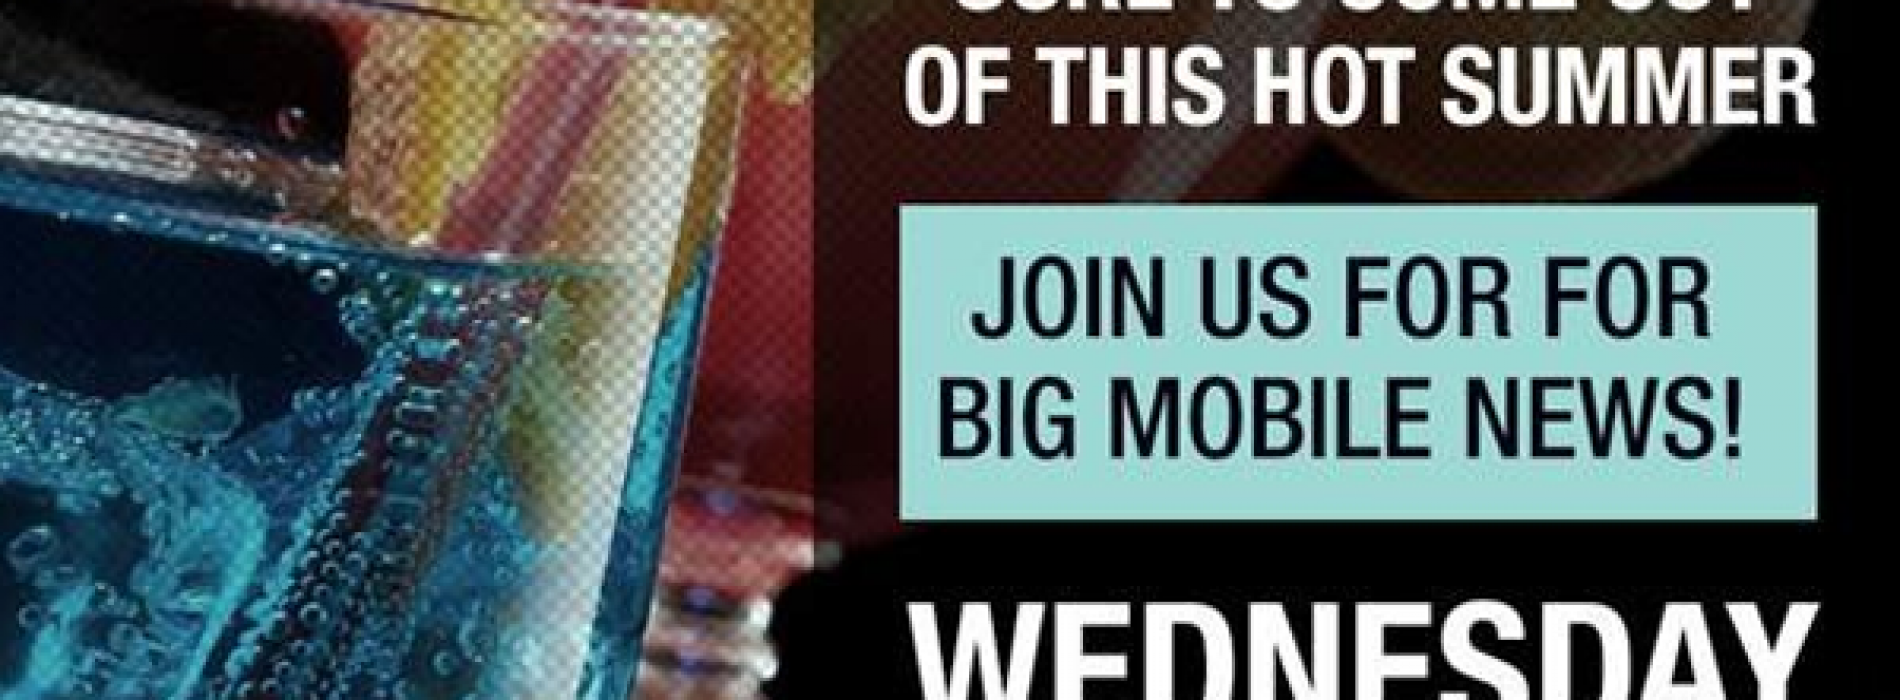 Samsung, Boost Mobile, and Virgin Mobile schedule something 'big' for August 22